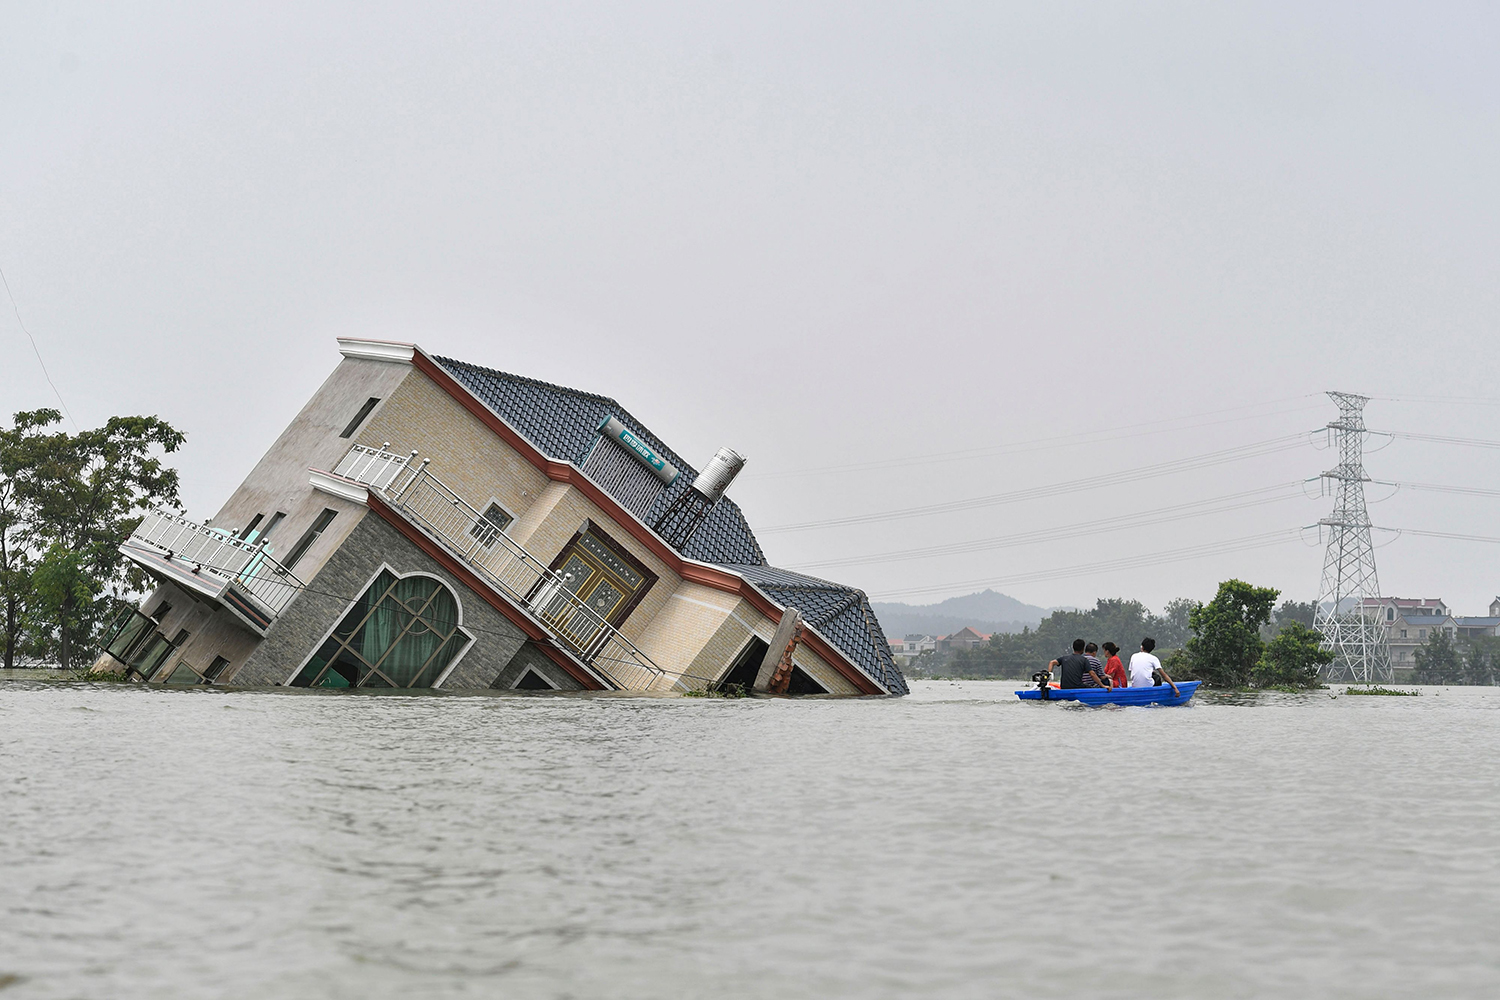 Residents ride past a flood-destroyed house near the Poyang Lake in China's central Jiangxi province July 15. STR/AFP via Getty Images